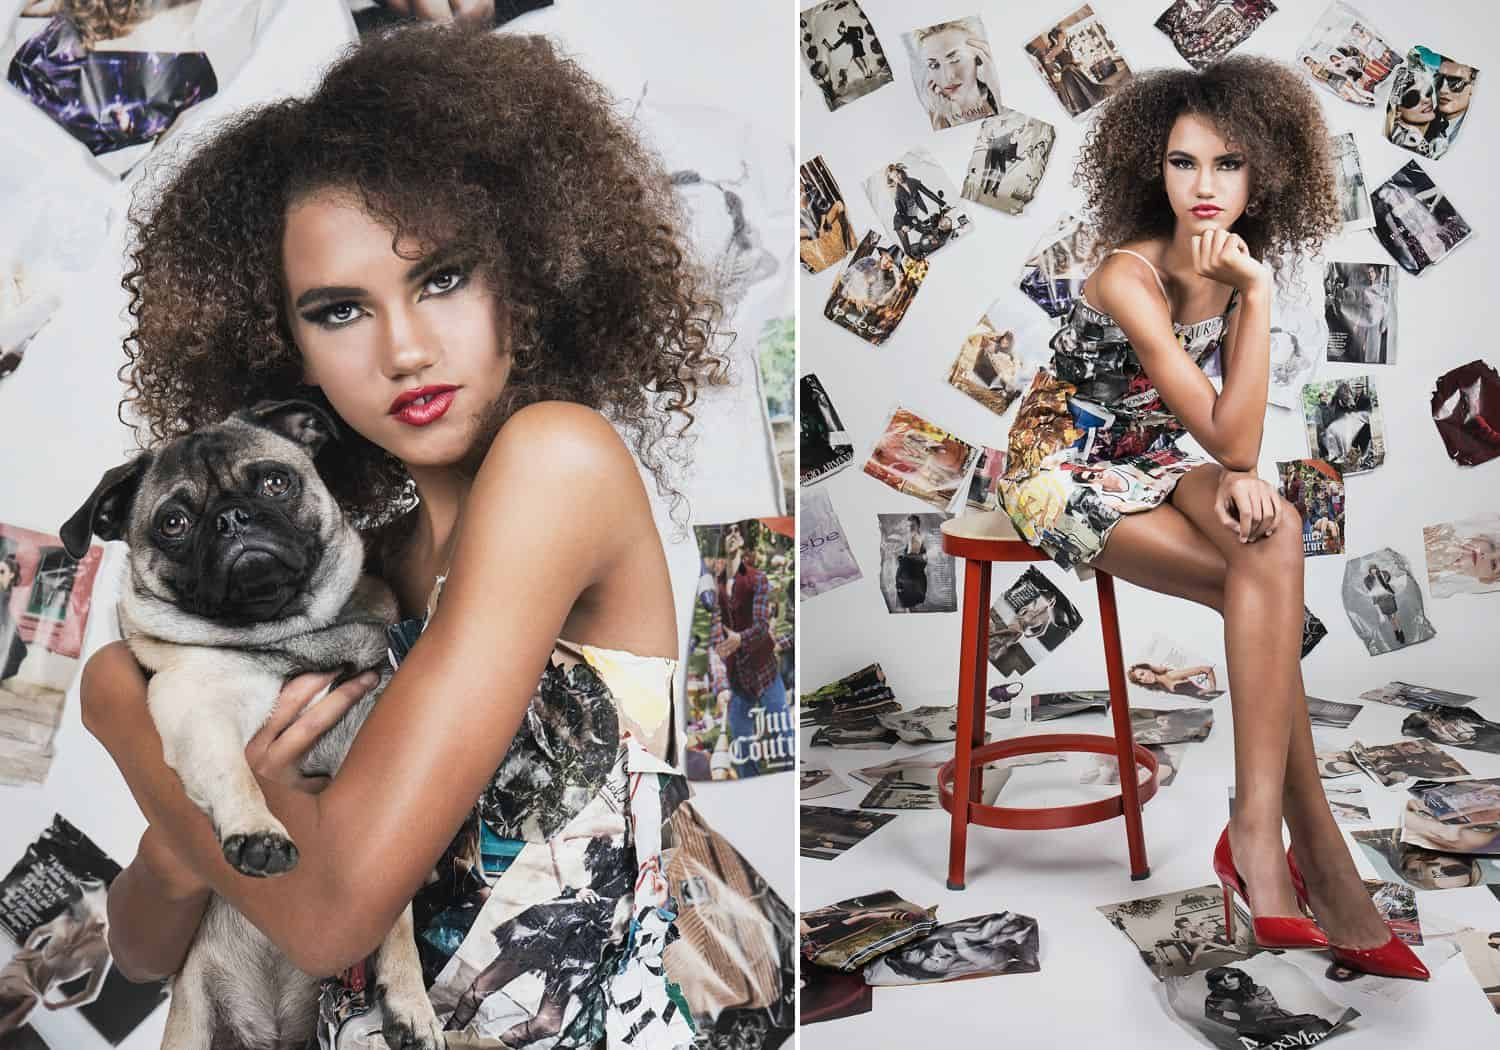 A Black model holding a pug dog poses on a red stool against a white wall plastered with photographs